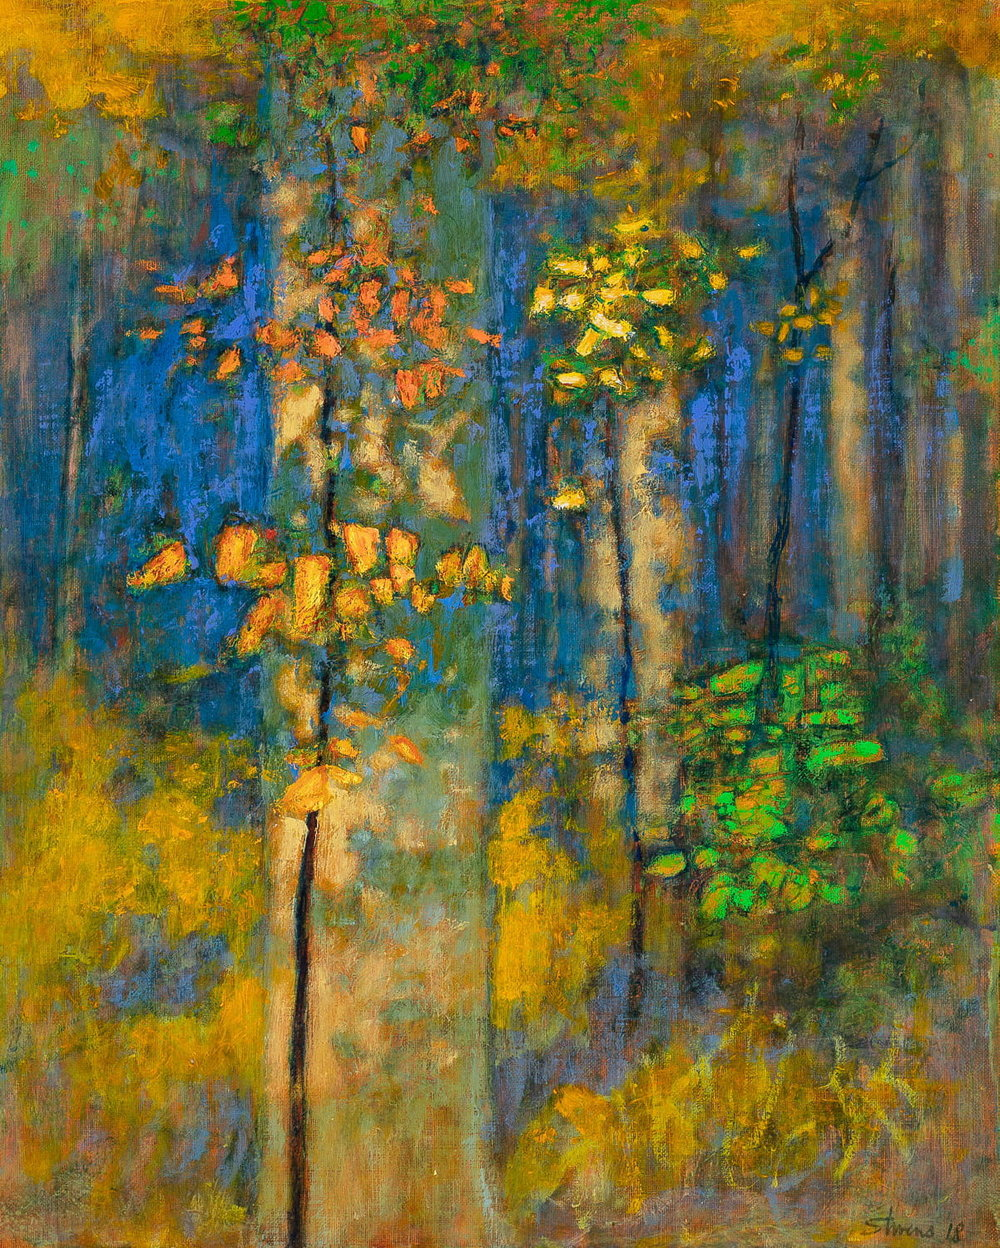 Sylvan Light  | oil on linen | 20 x 16"